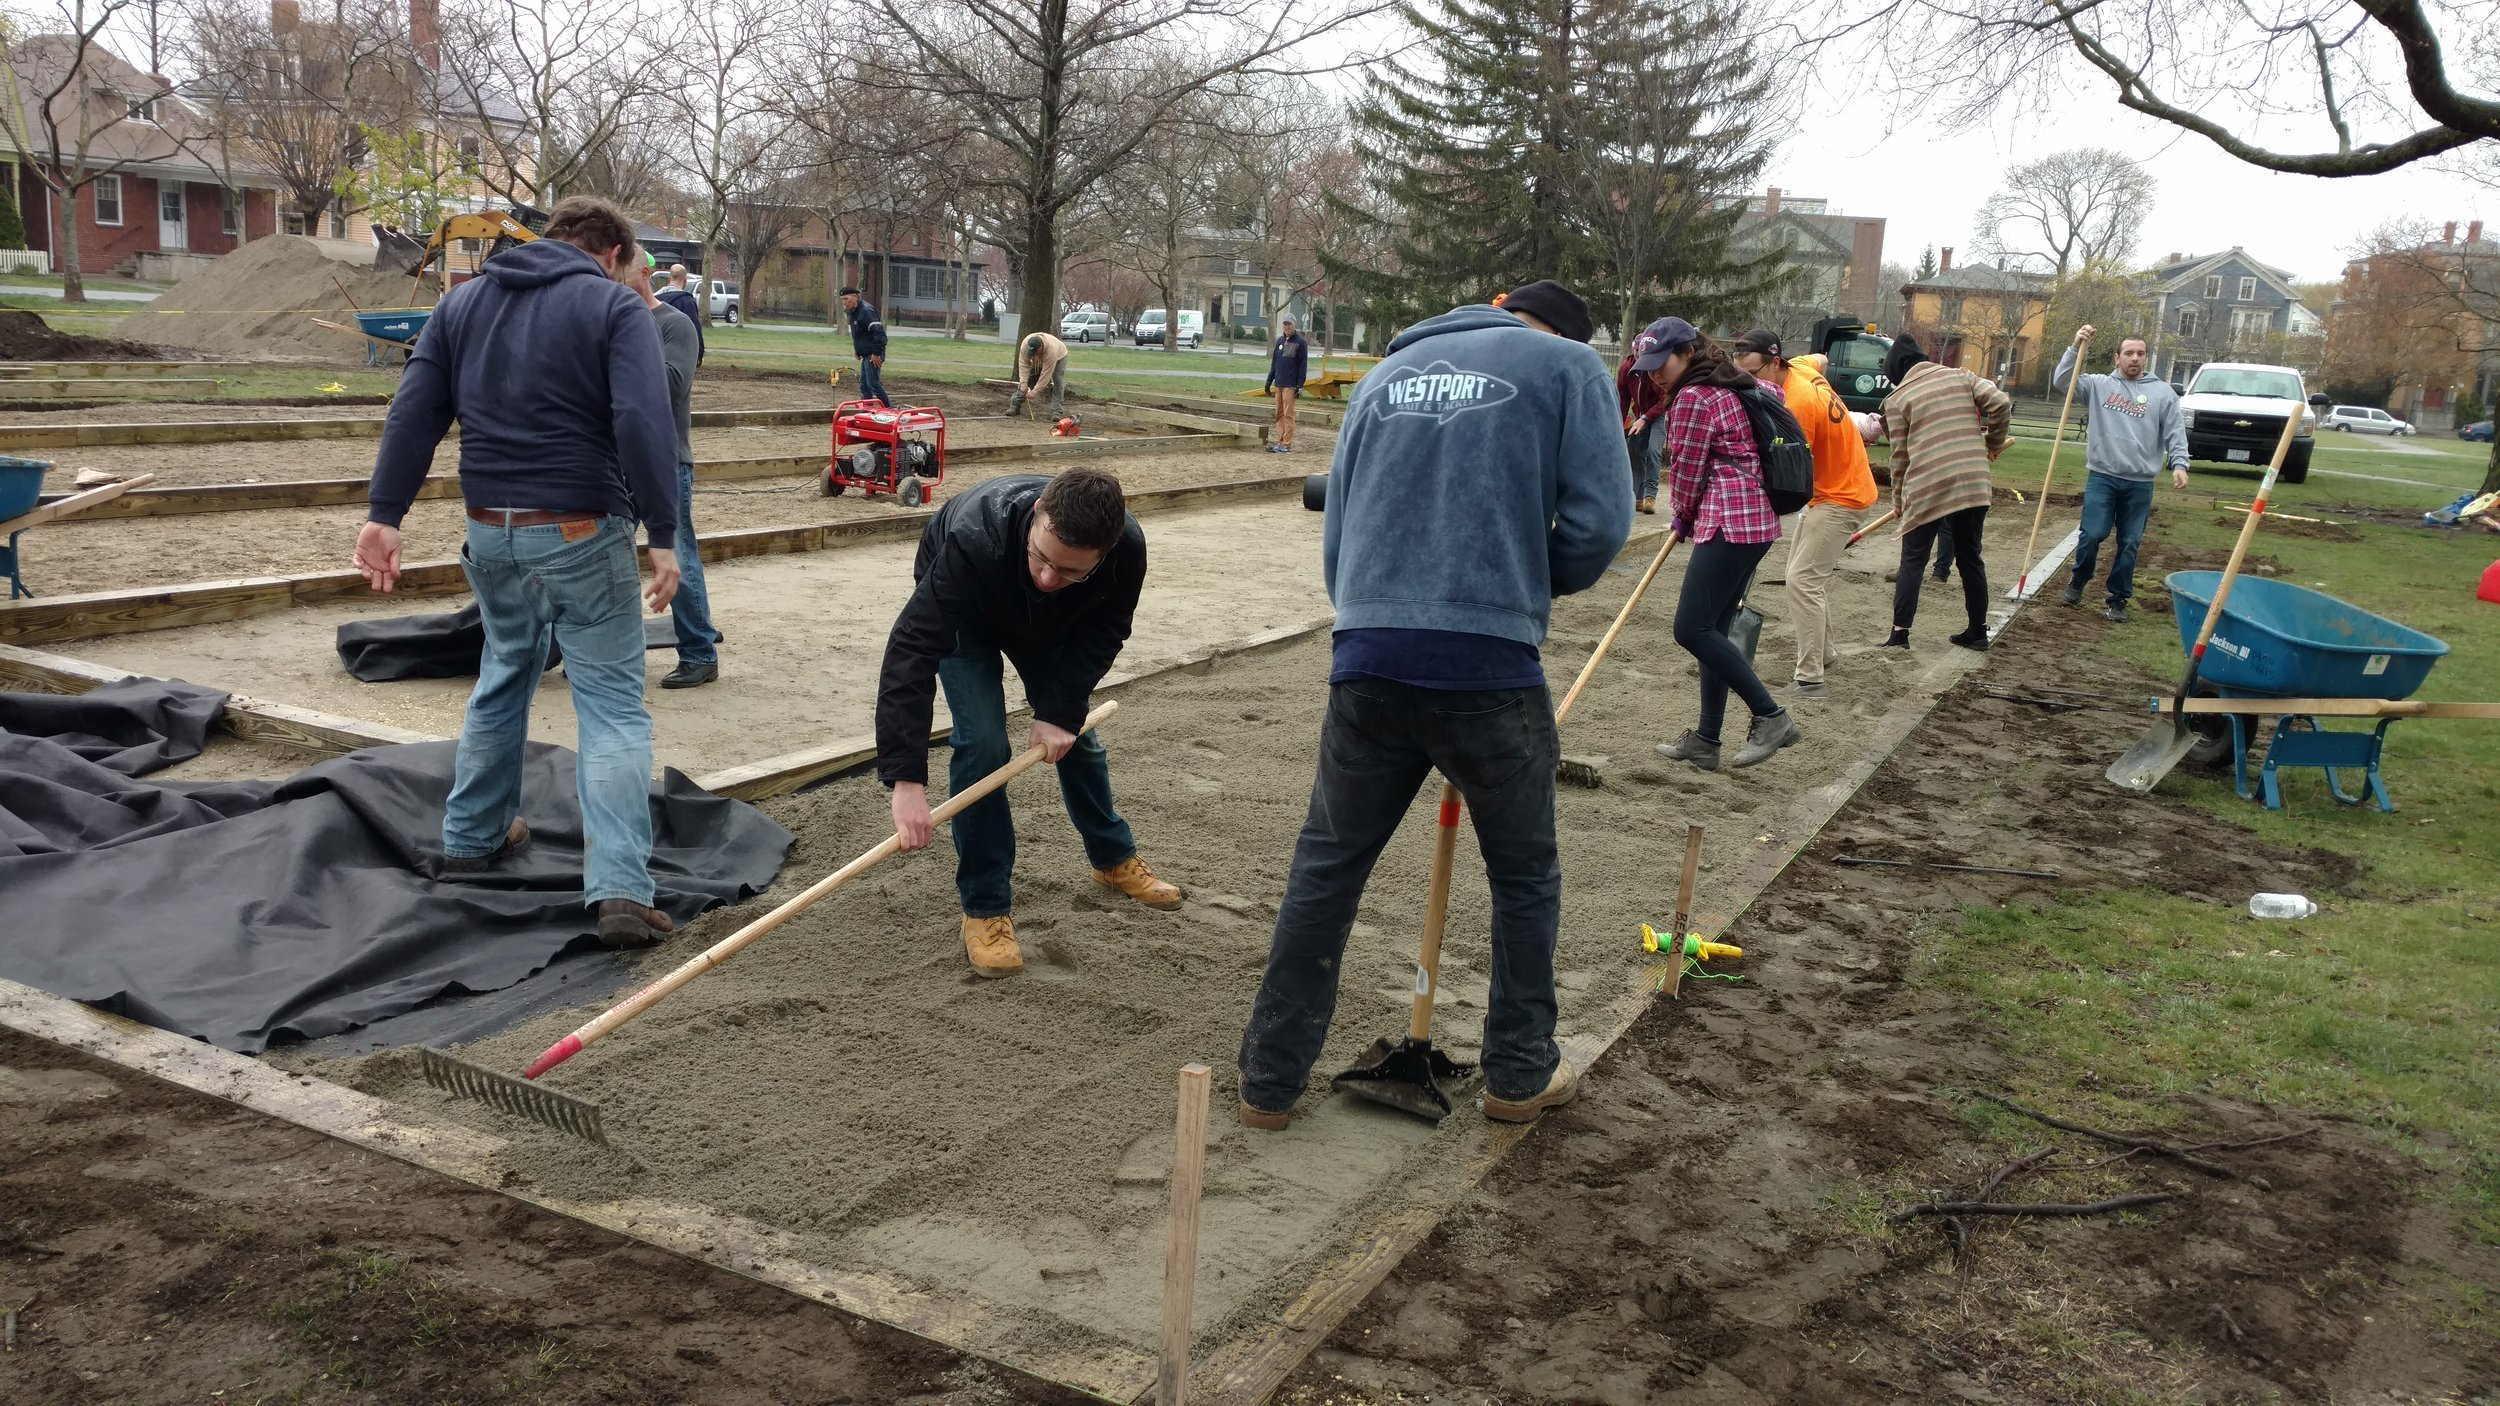 Members of the Rhode Island Chapter of American Society of Civil Engineers show up to help